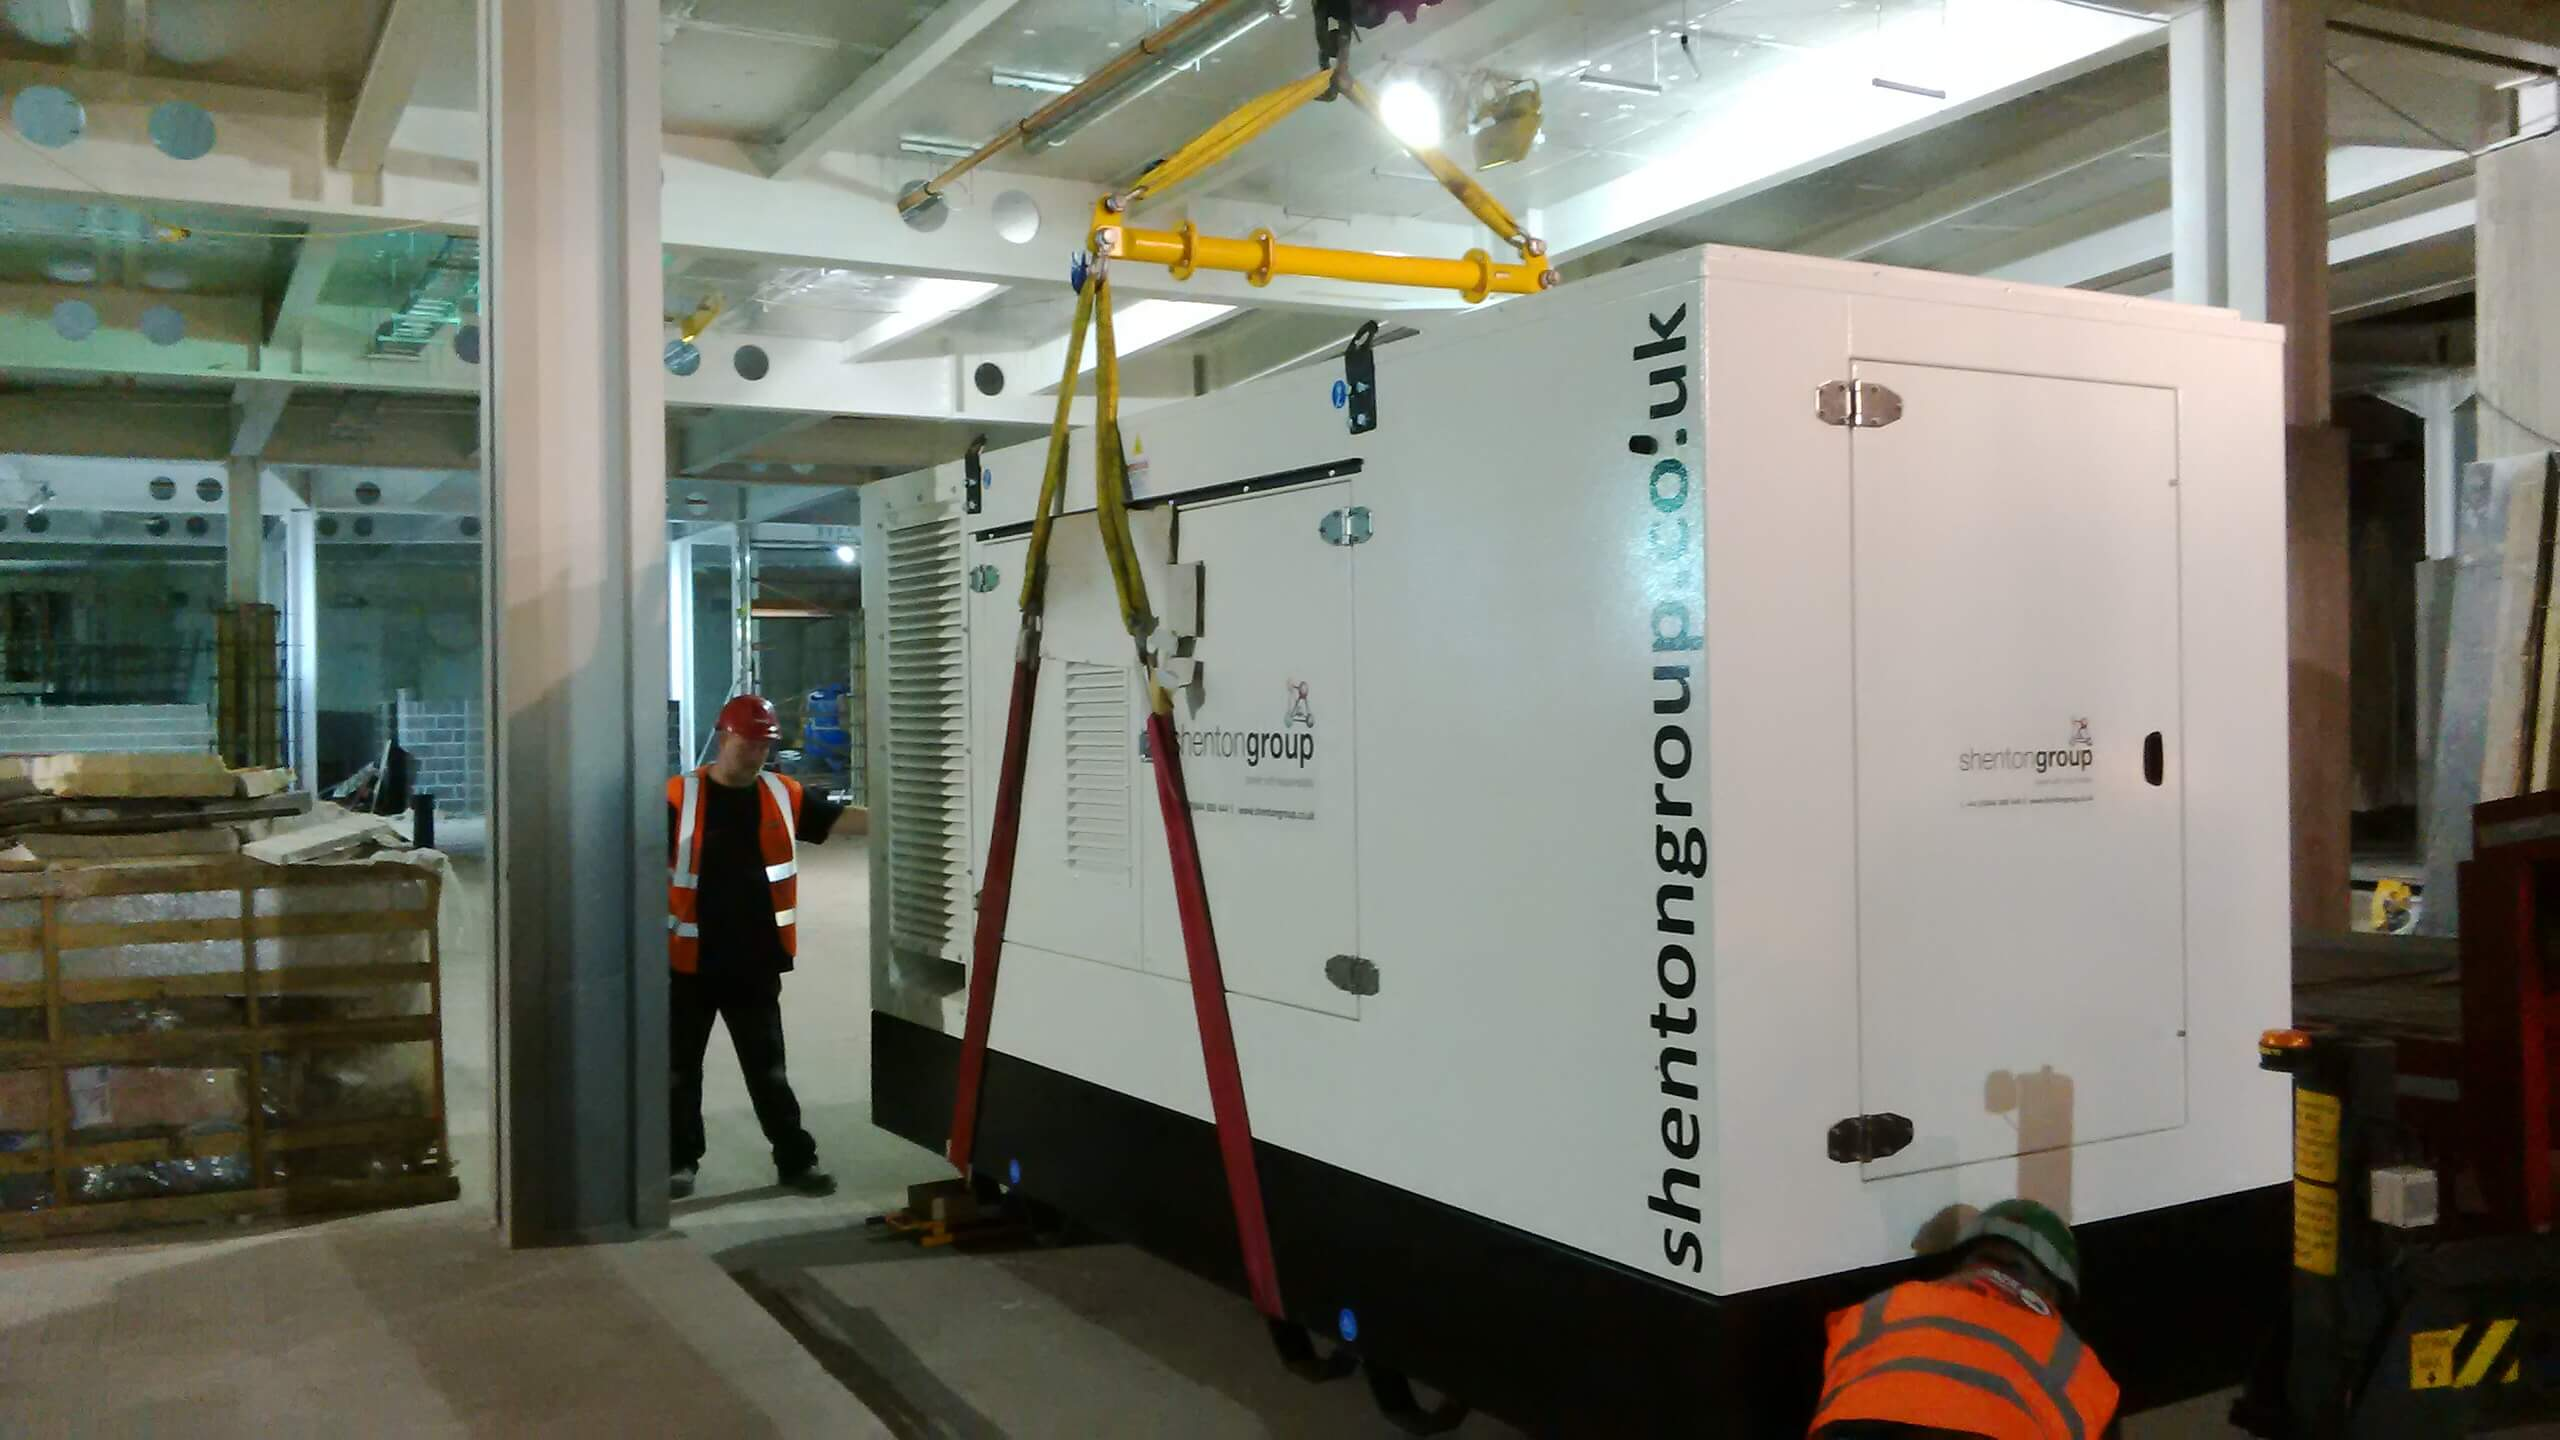 Generator Project For Retail Development Completed Motor This Was Done With Resounding Success Due To The Skill And Planning Of Our Highly Experienced Management Engineering Teams